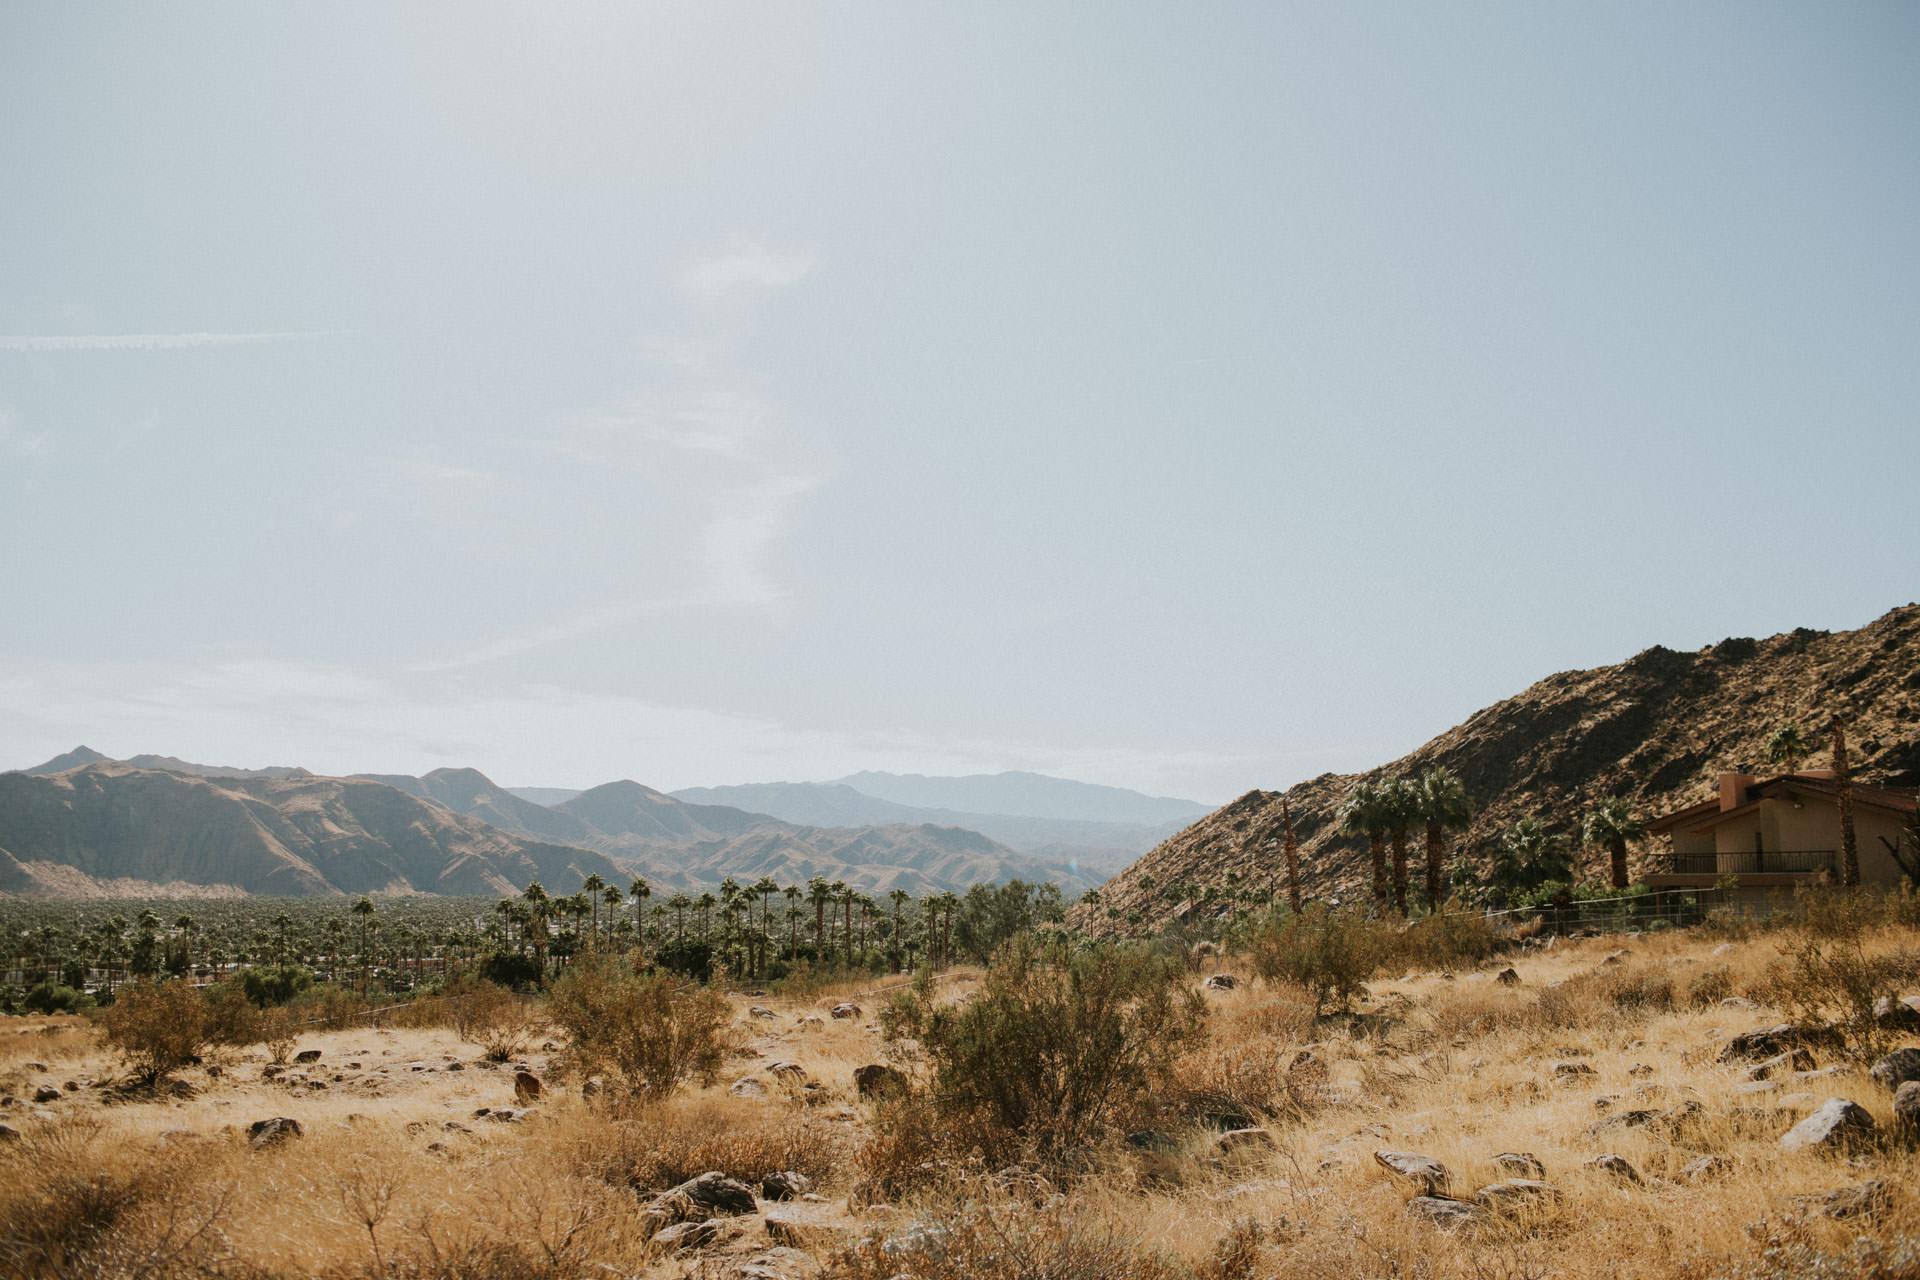 view of desert and mountains in palm springs